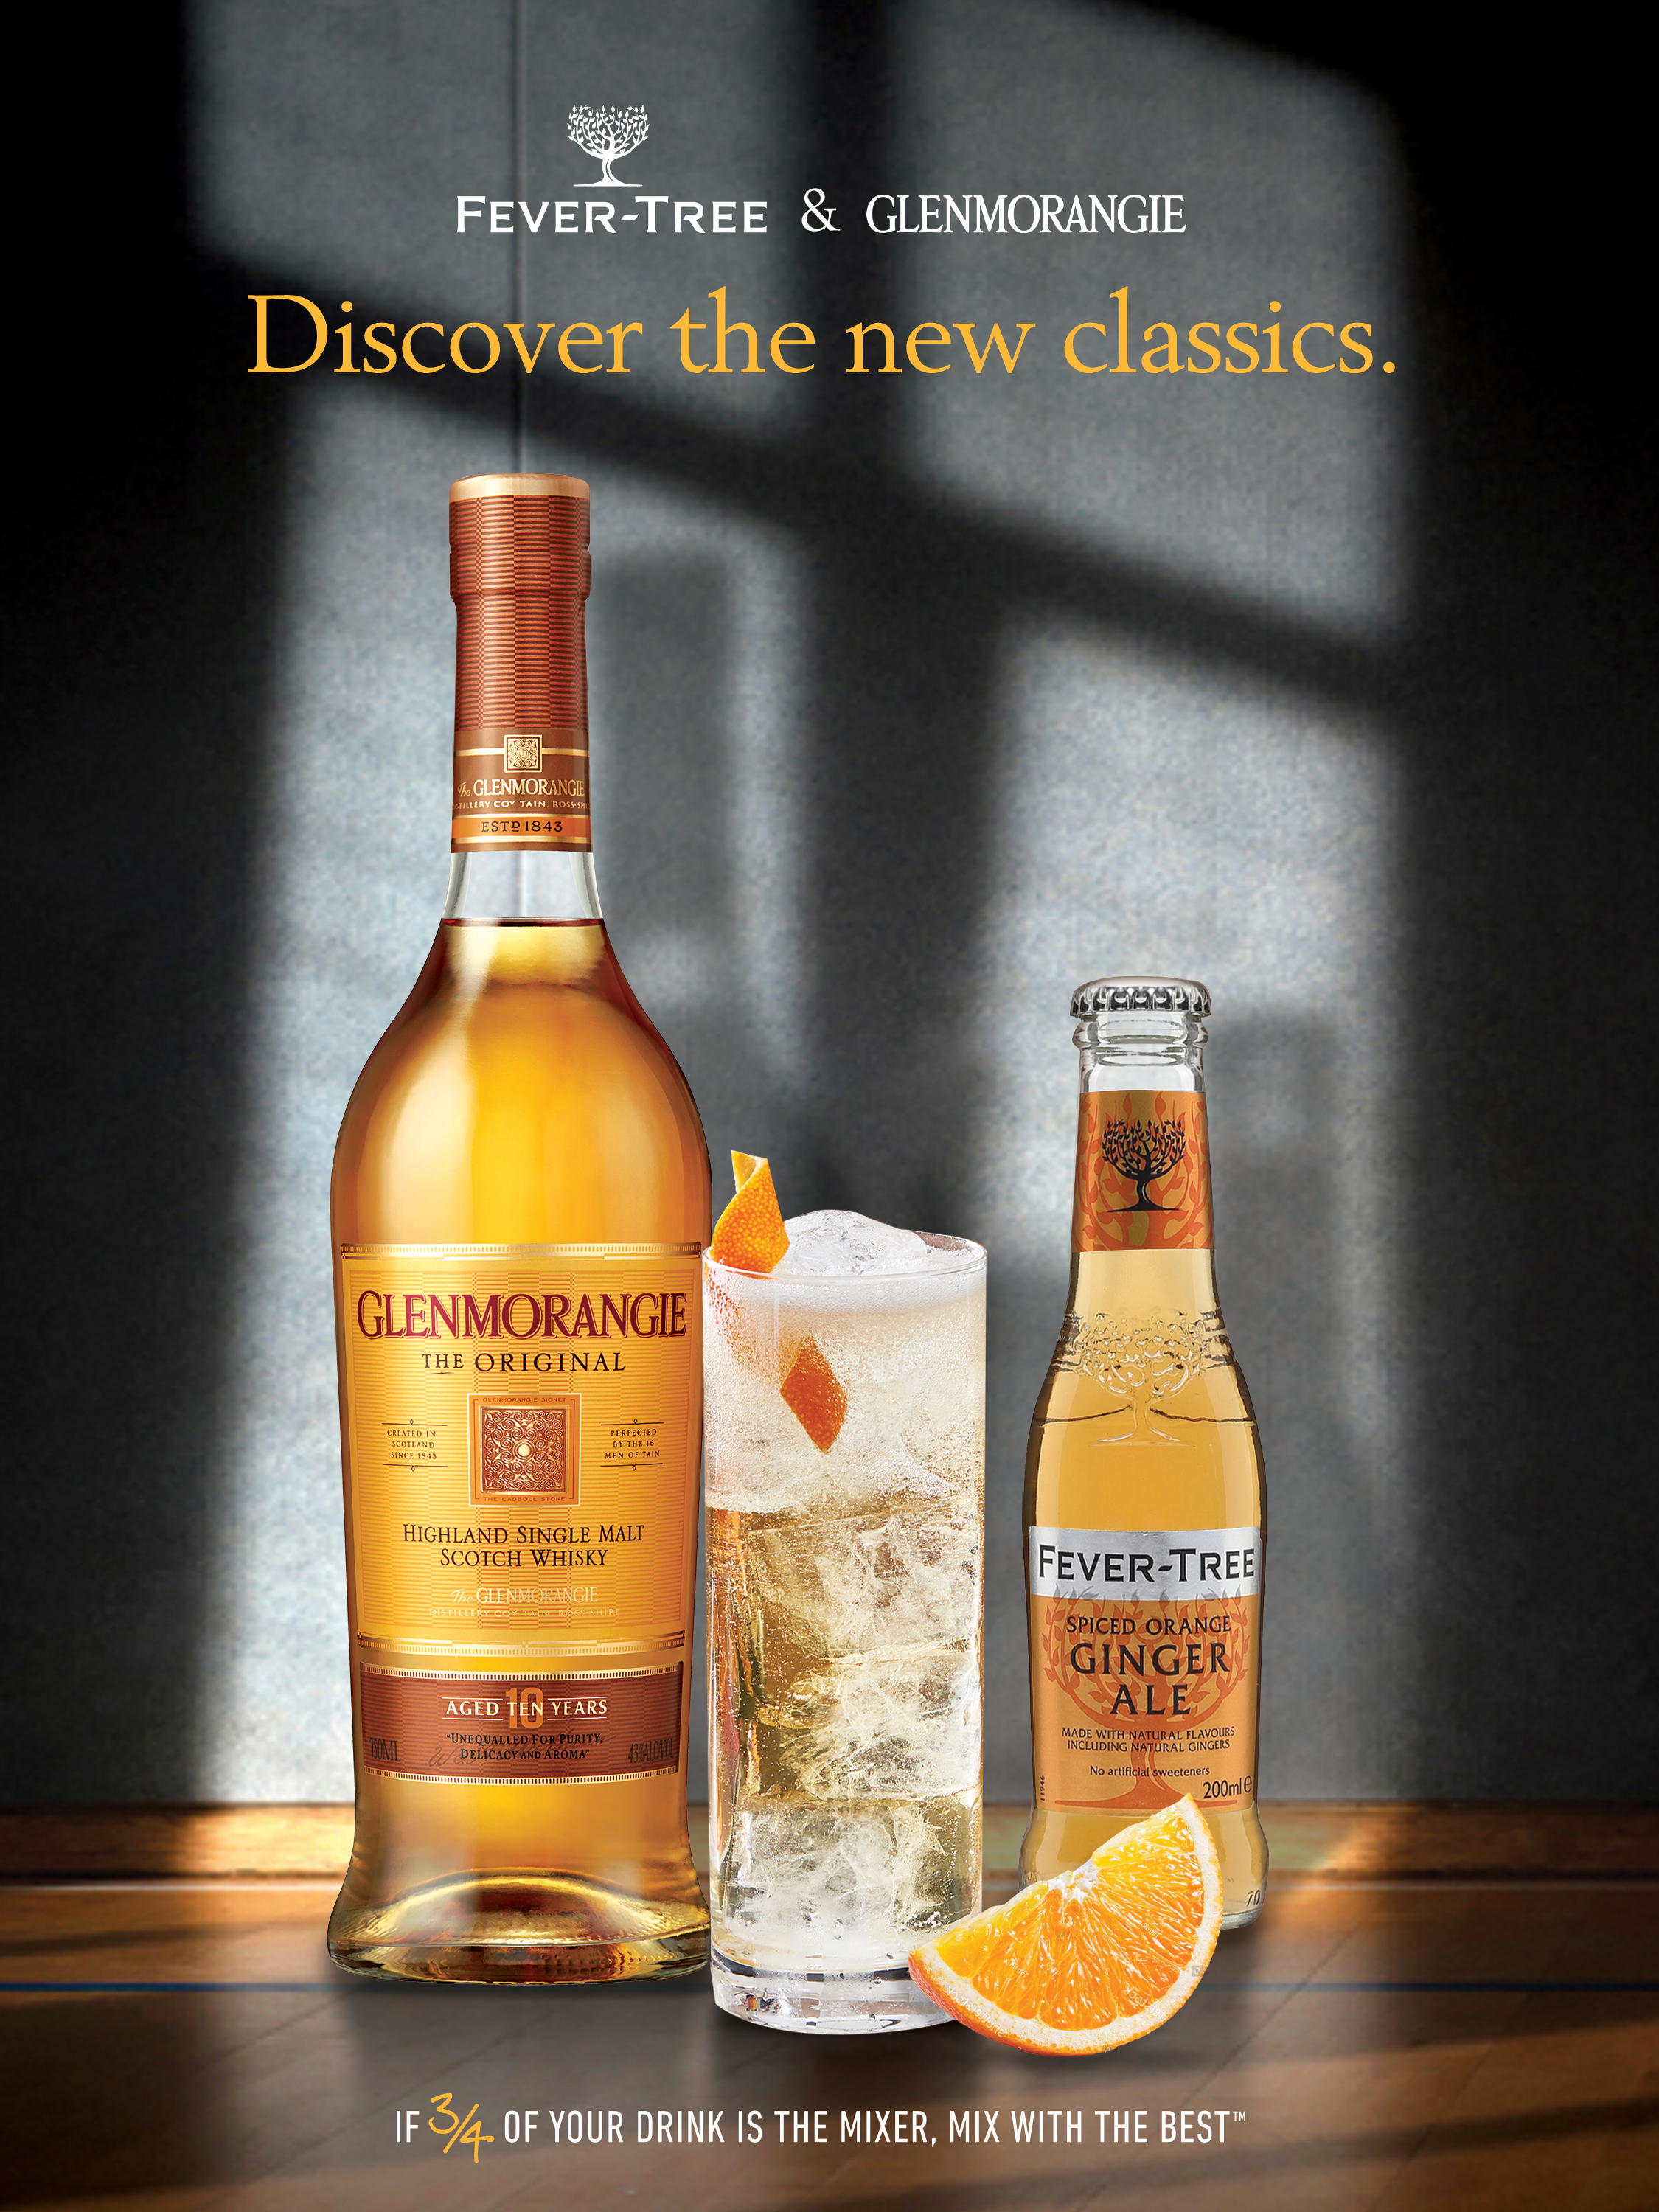 0001_FT19_POSpartnership_Glenmorangie_JK_C11